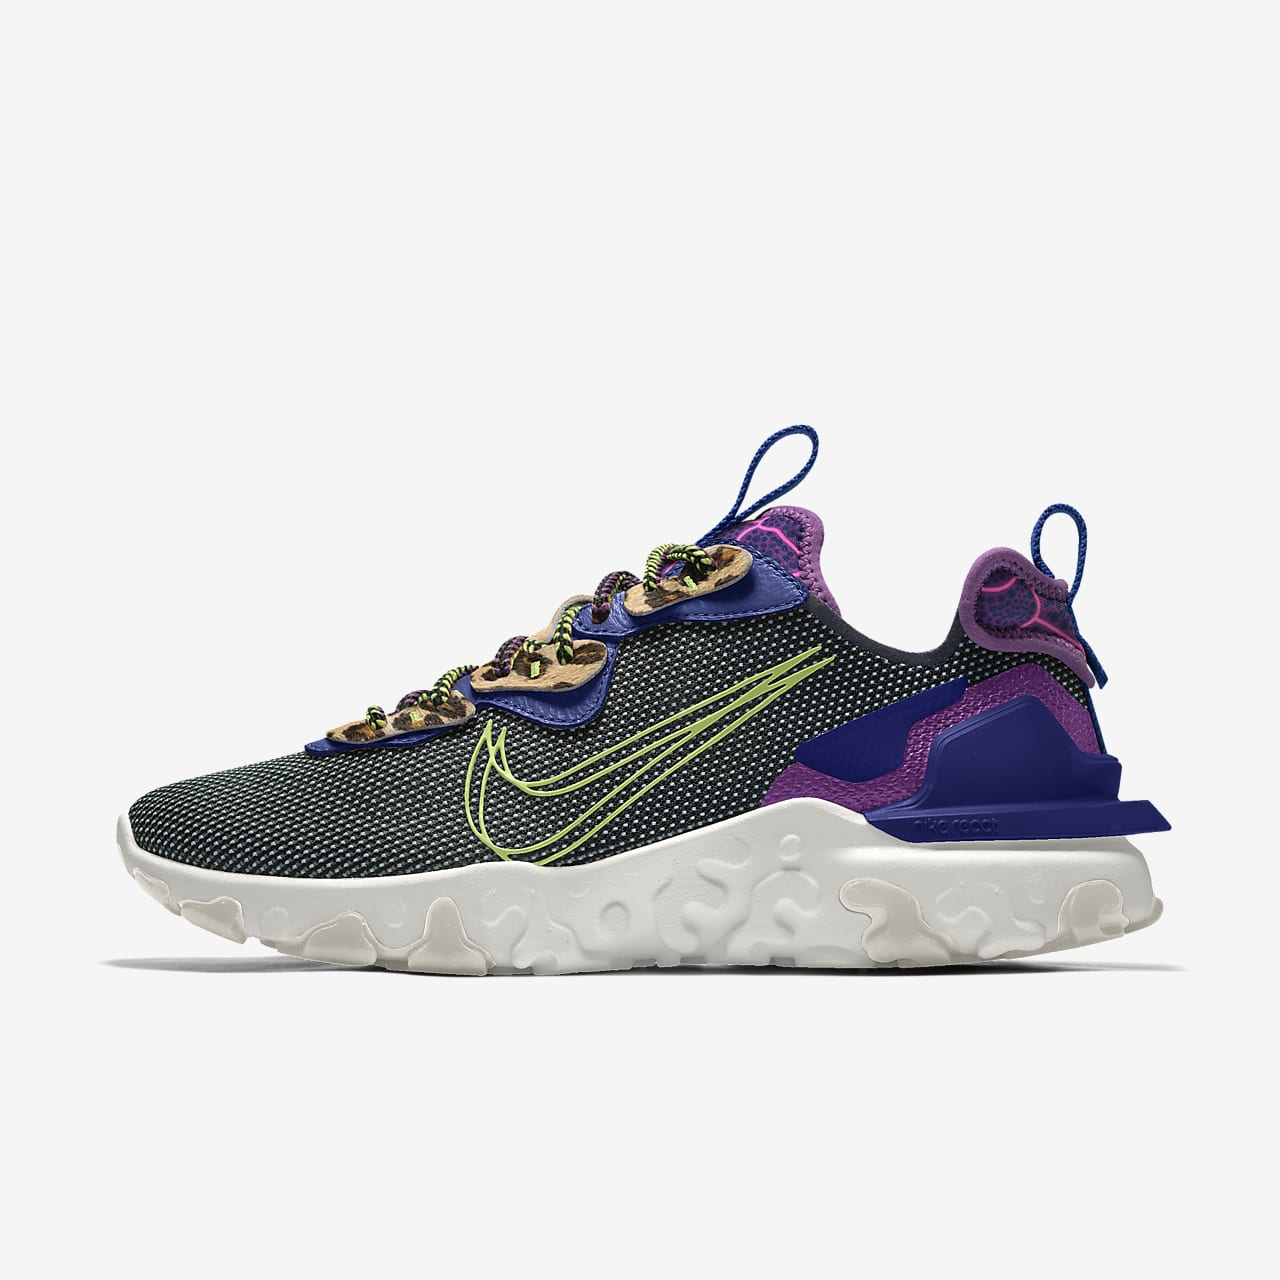 Scarpa lifestyle personalizzabile Nike React Vision By You - Donna